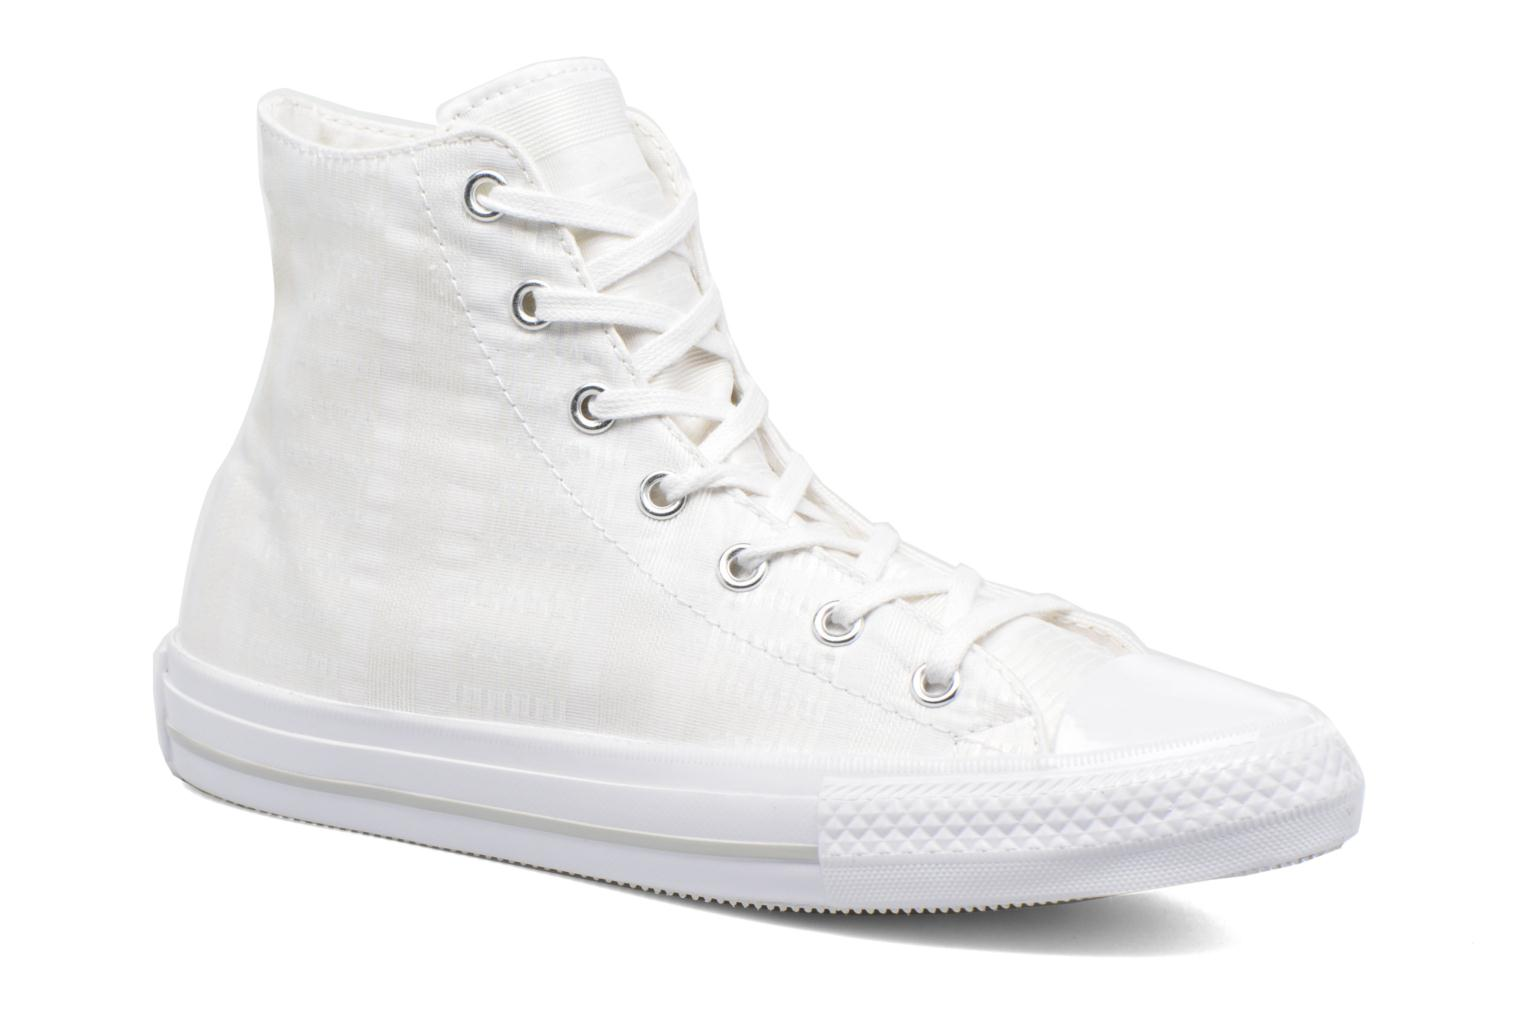 a2133d270d6 Converse Chuck Taylor All Star Gemma Hi Engineered Lace (Blanc) - Baskets  chez Sarenza (289444) GH8HUA1Z - destrainspourtous.fr